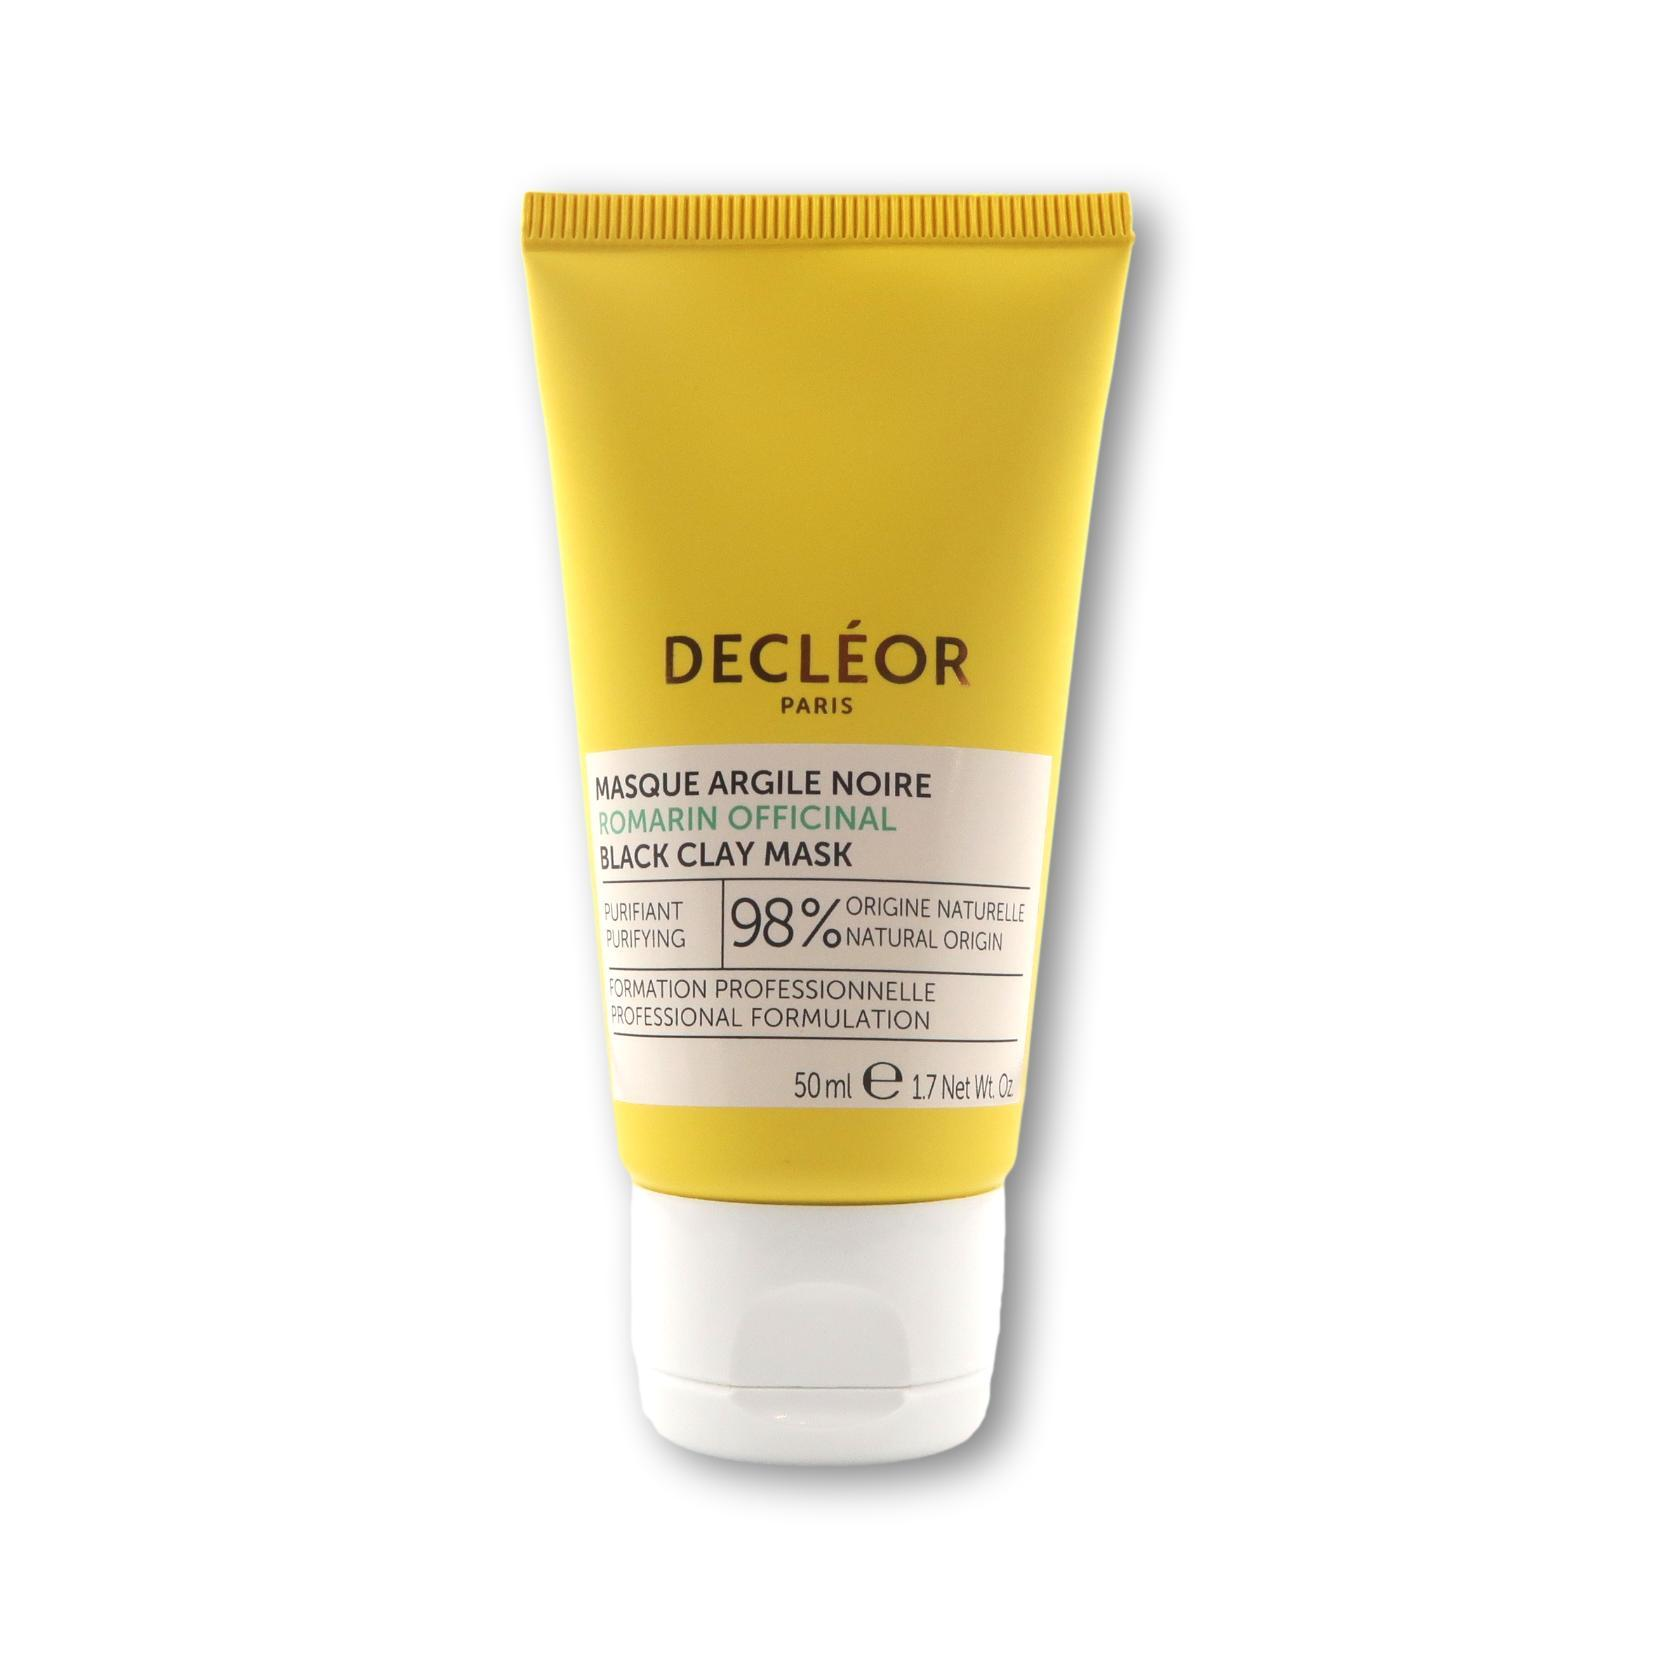 Decleor Rosemary Officinalis Black Clay Mask 50ml Romarin Officinal